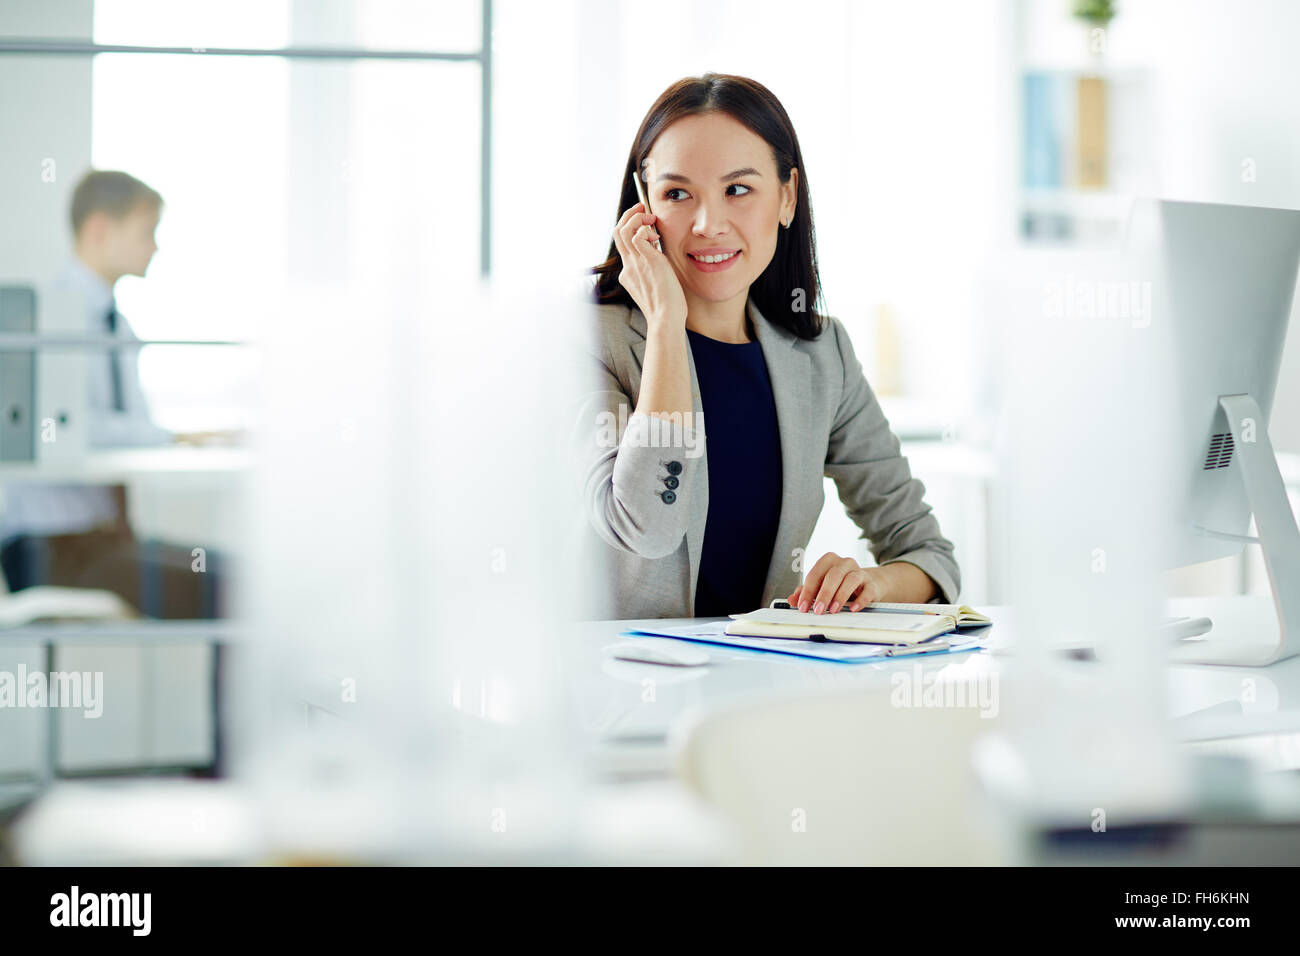 Young businesswoman speaking on the phone while planning work - Stock Image